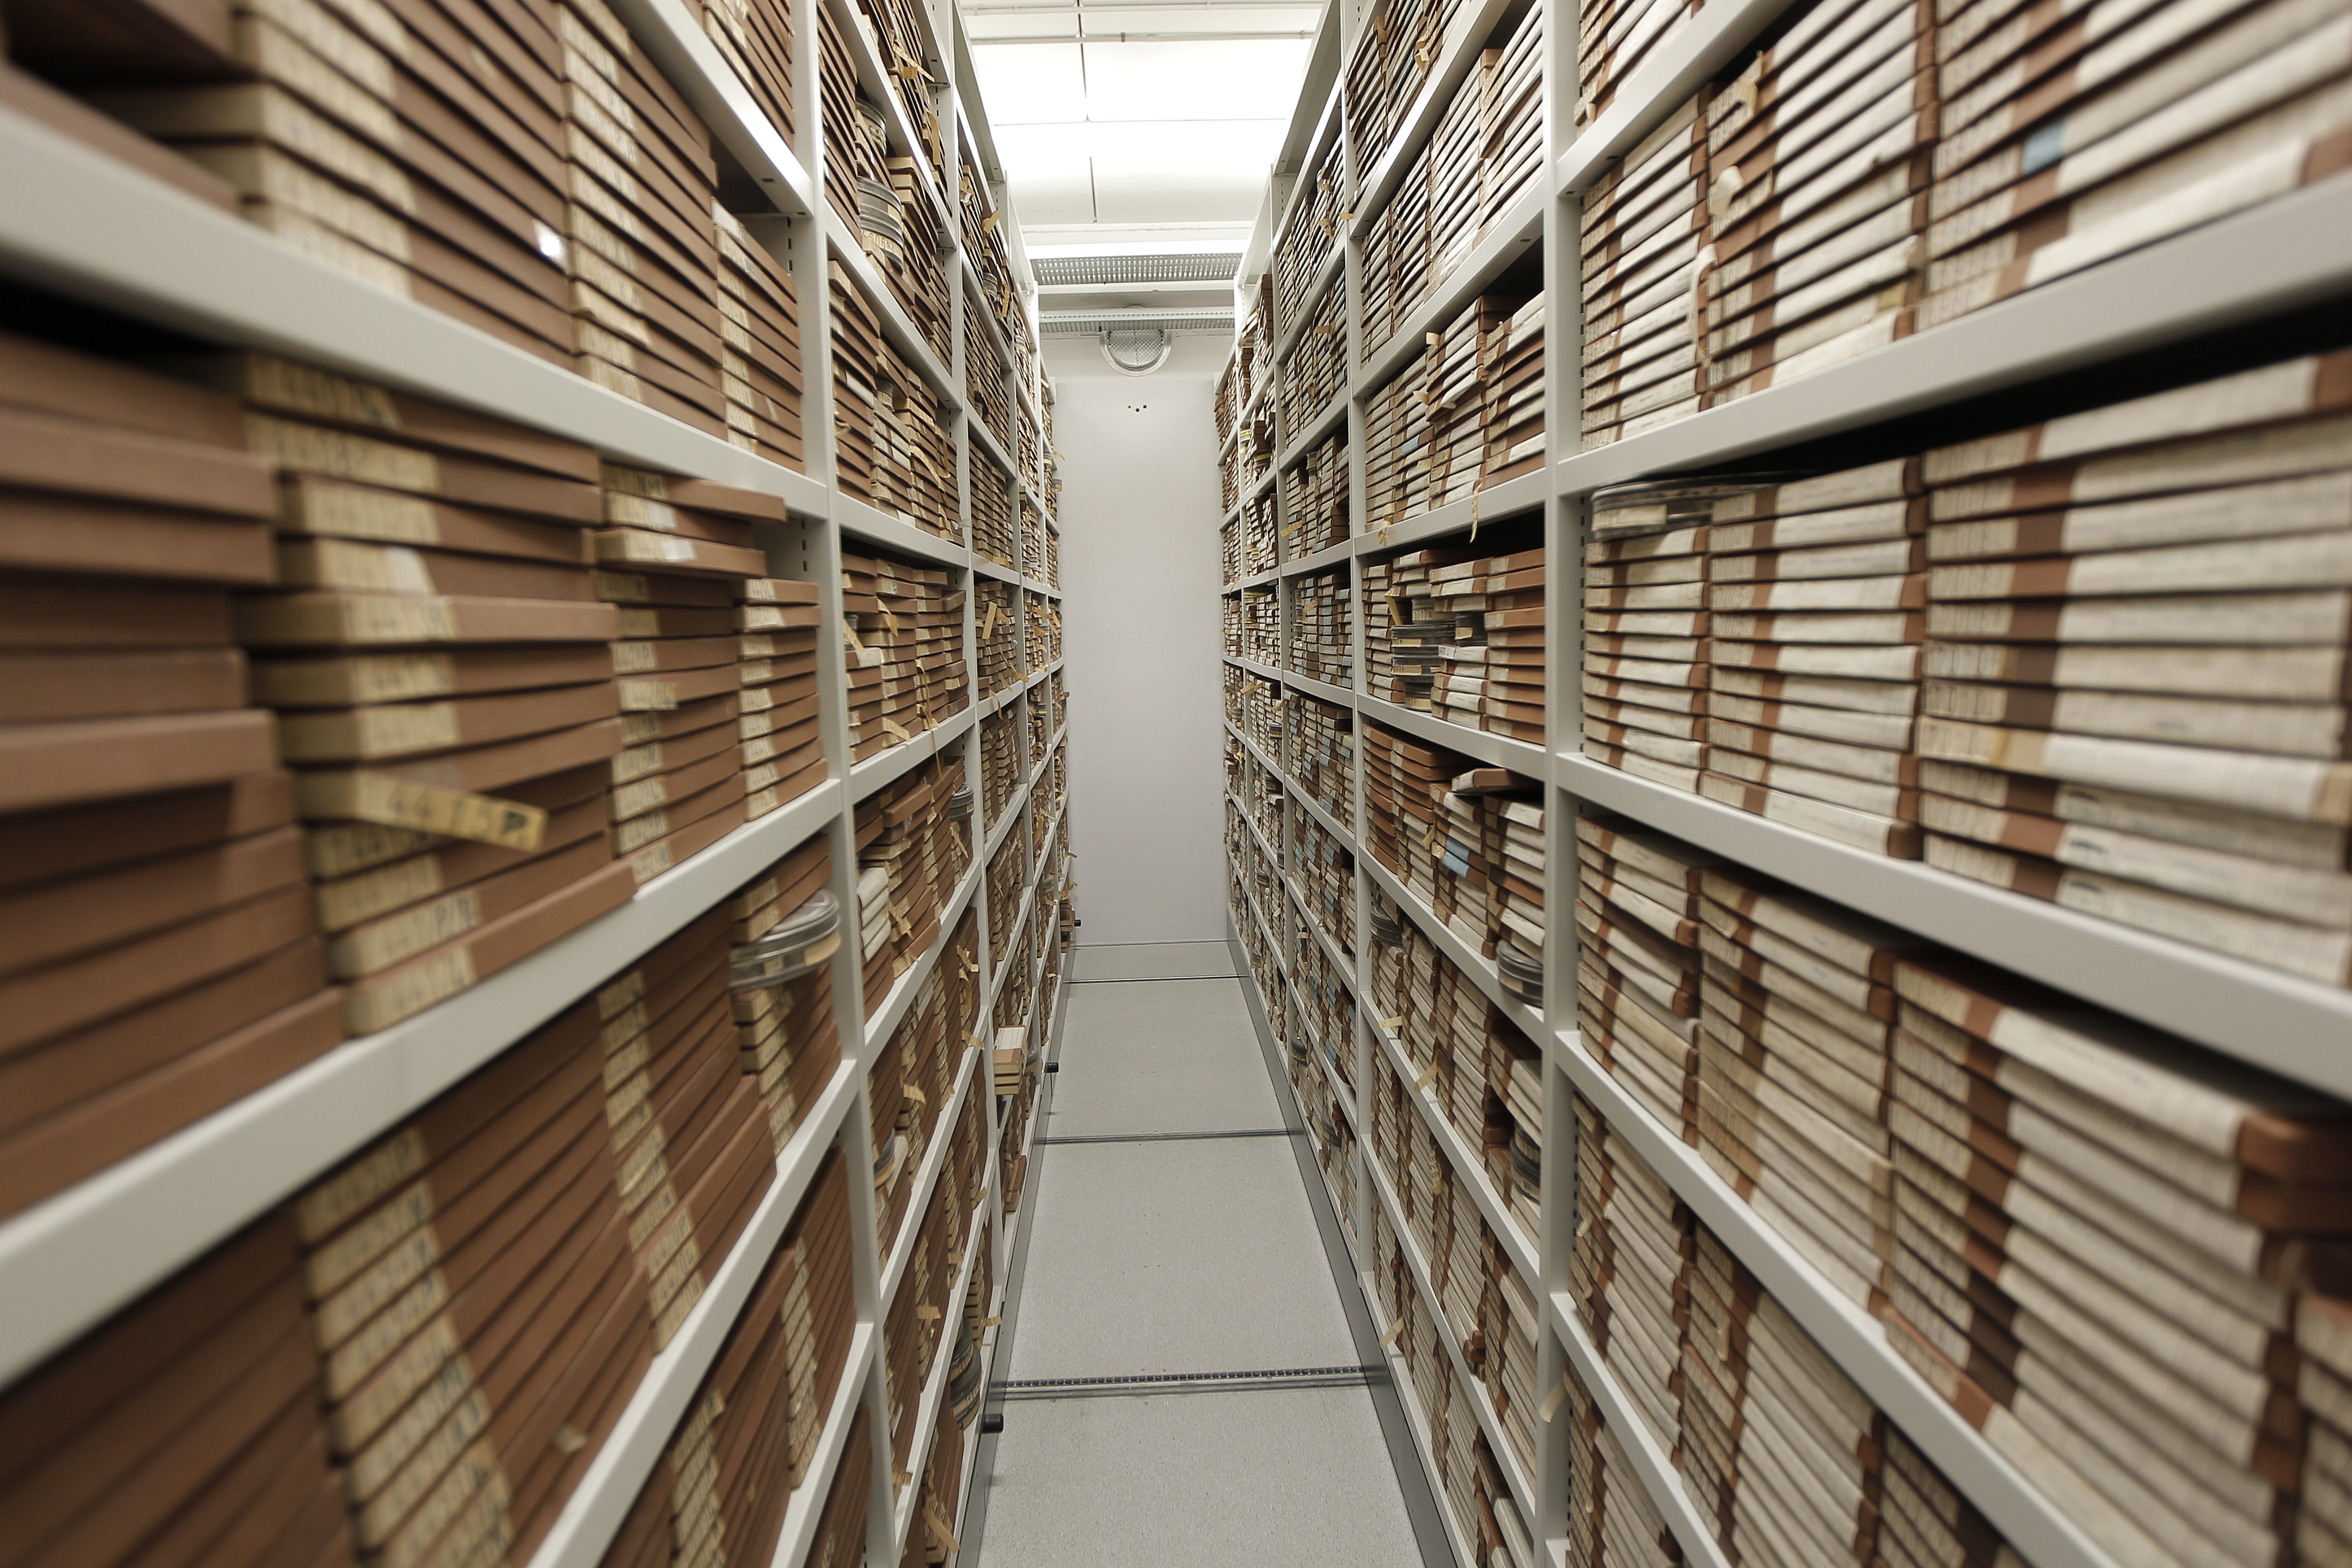 File:Film archive storage (6498619601).jpg - Wikimedia Commons